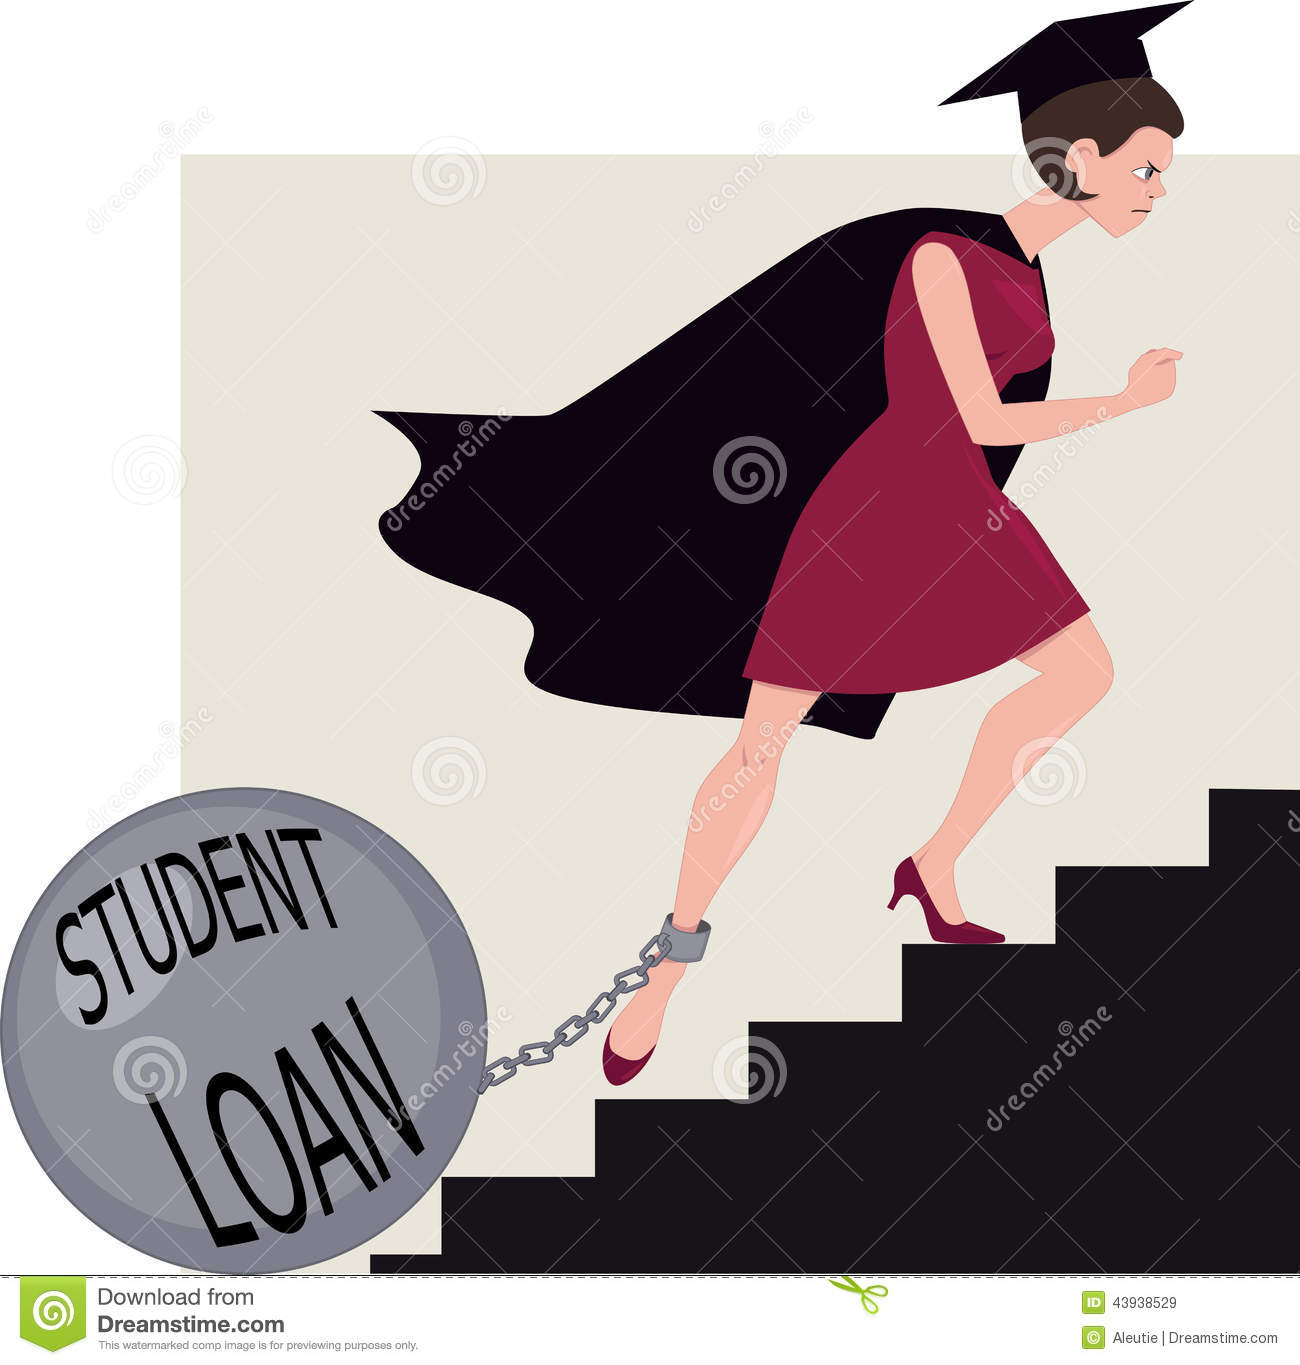 Clipart student loan freeuse library Student Loan Burden Stock Vector - Image: 43938529 freeuse library